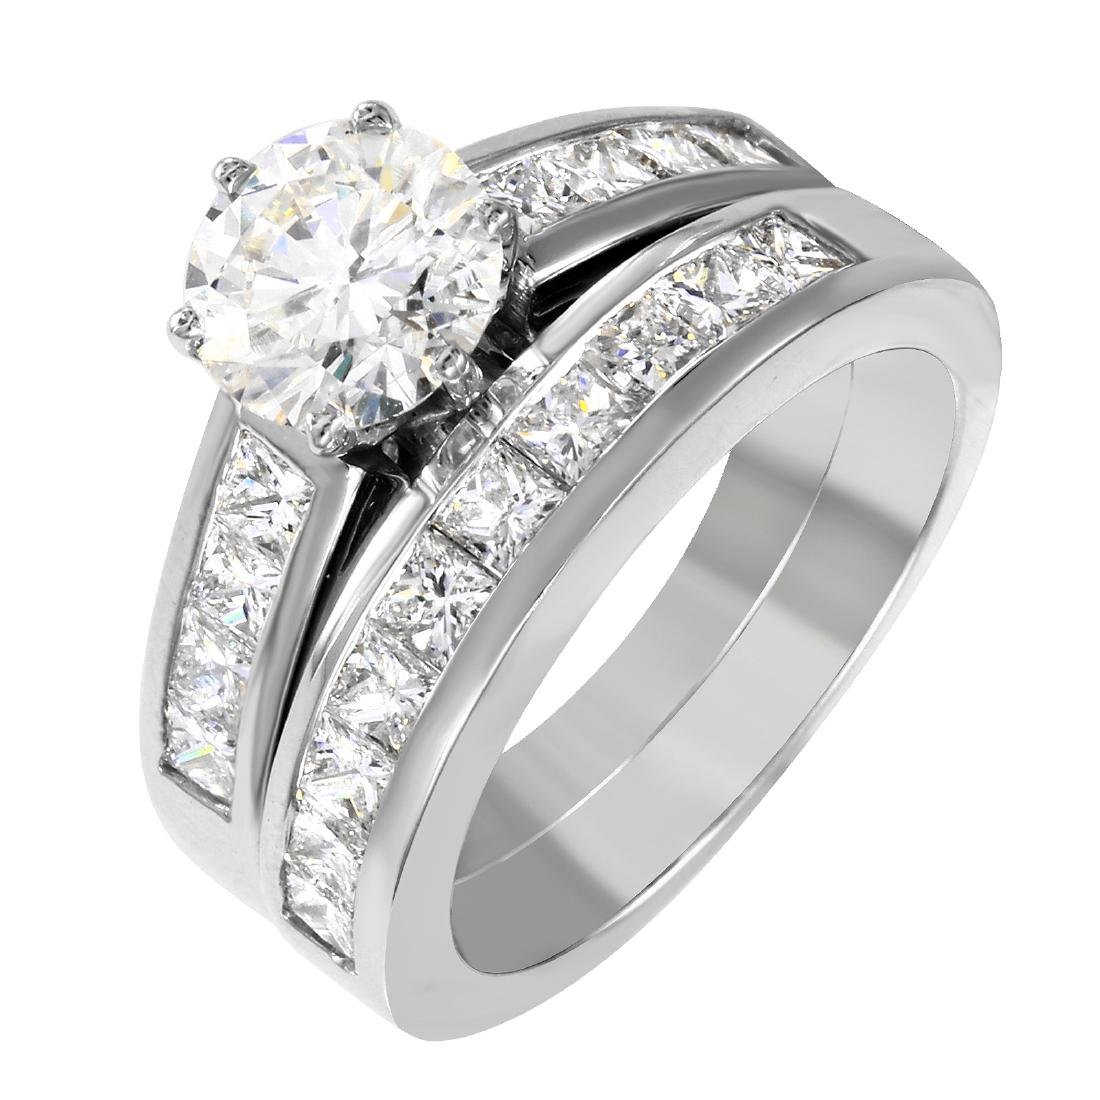 Platinum Diamond Wedding Ring Set